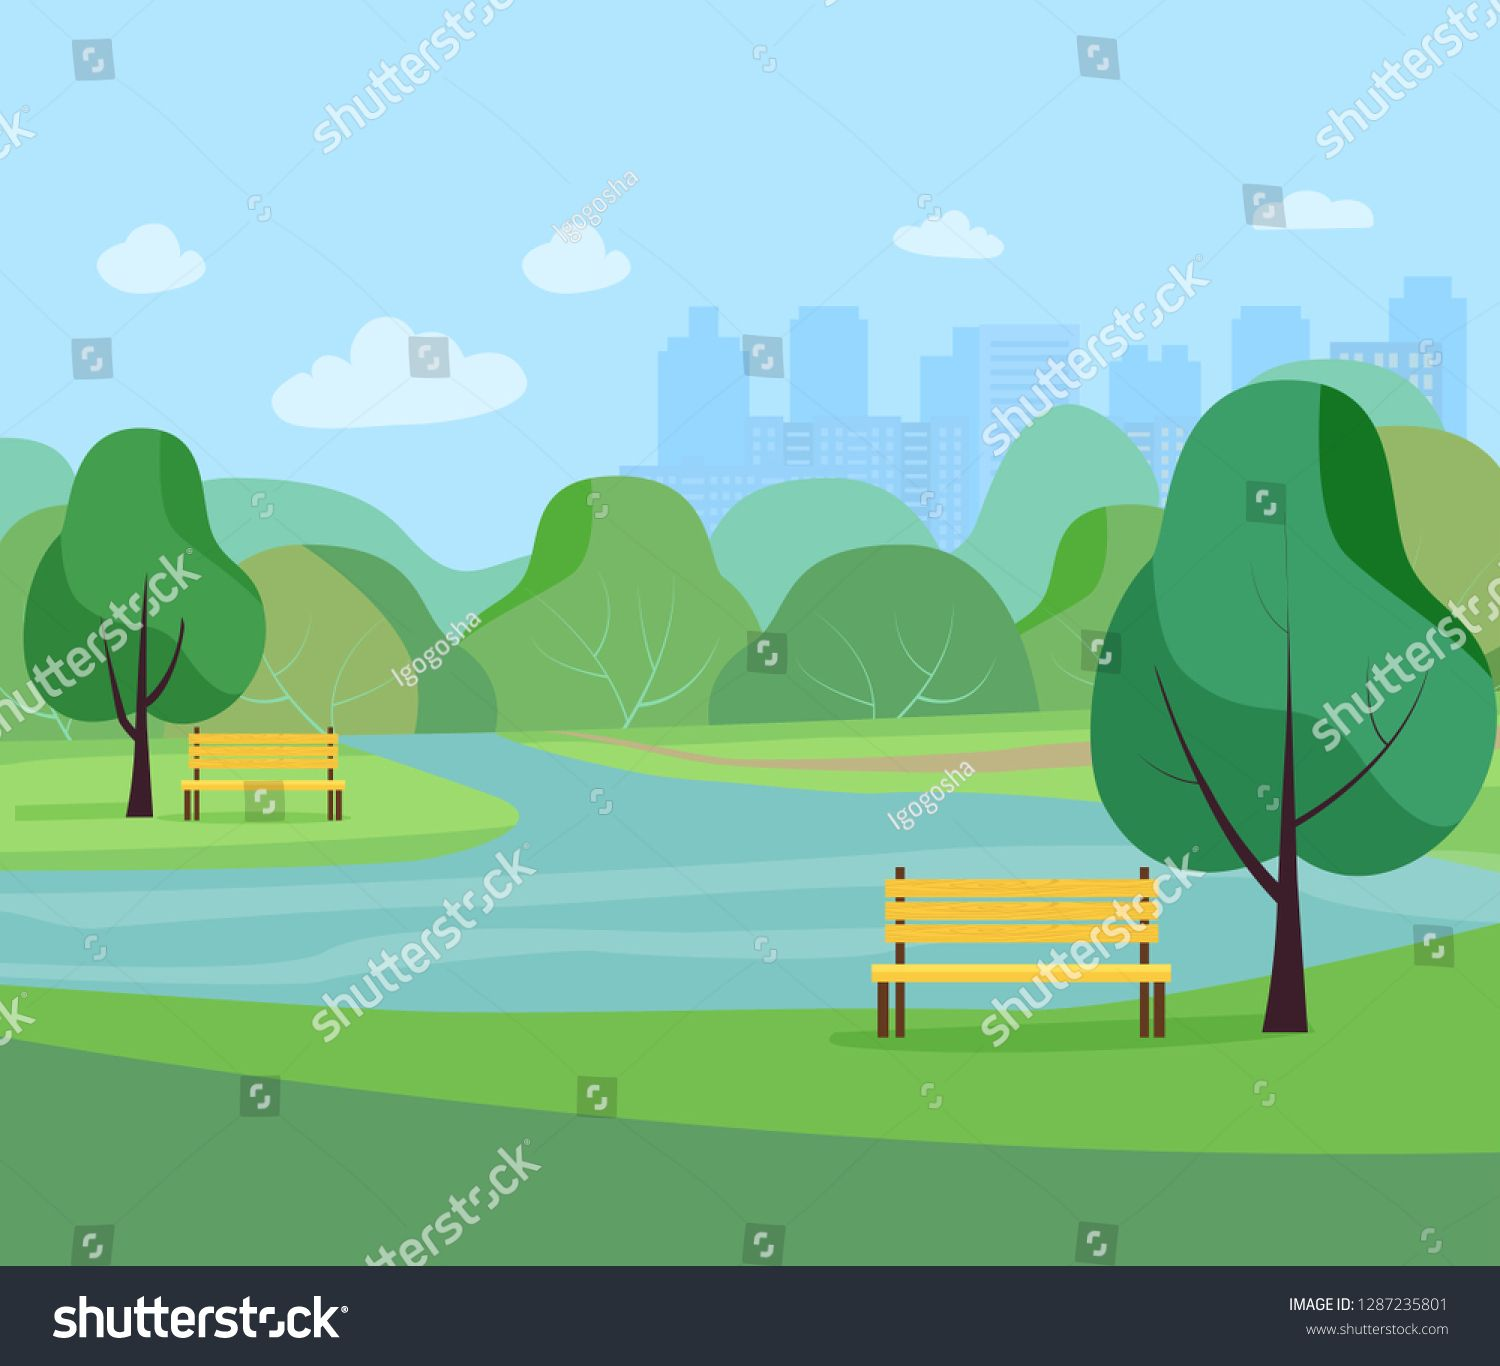 Landscape In City Park Vector Flat Style Illustration Sponsored Affiliate Park City Landscape Vector City Landscape Landscape Park City